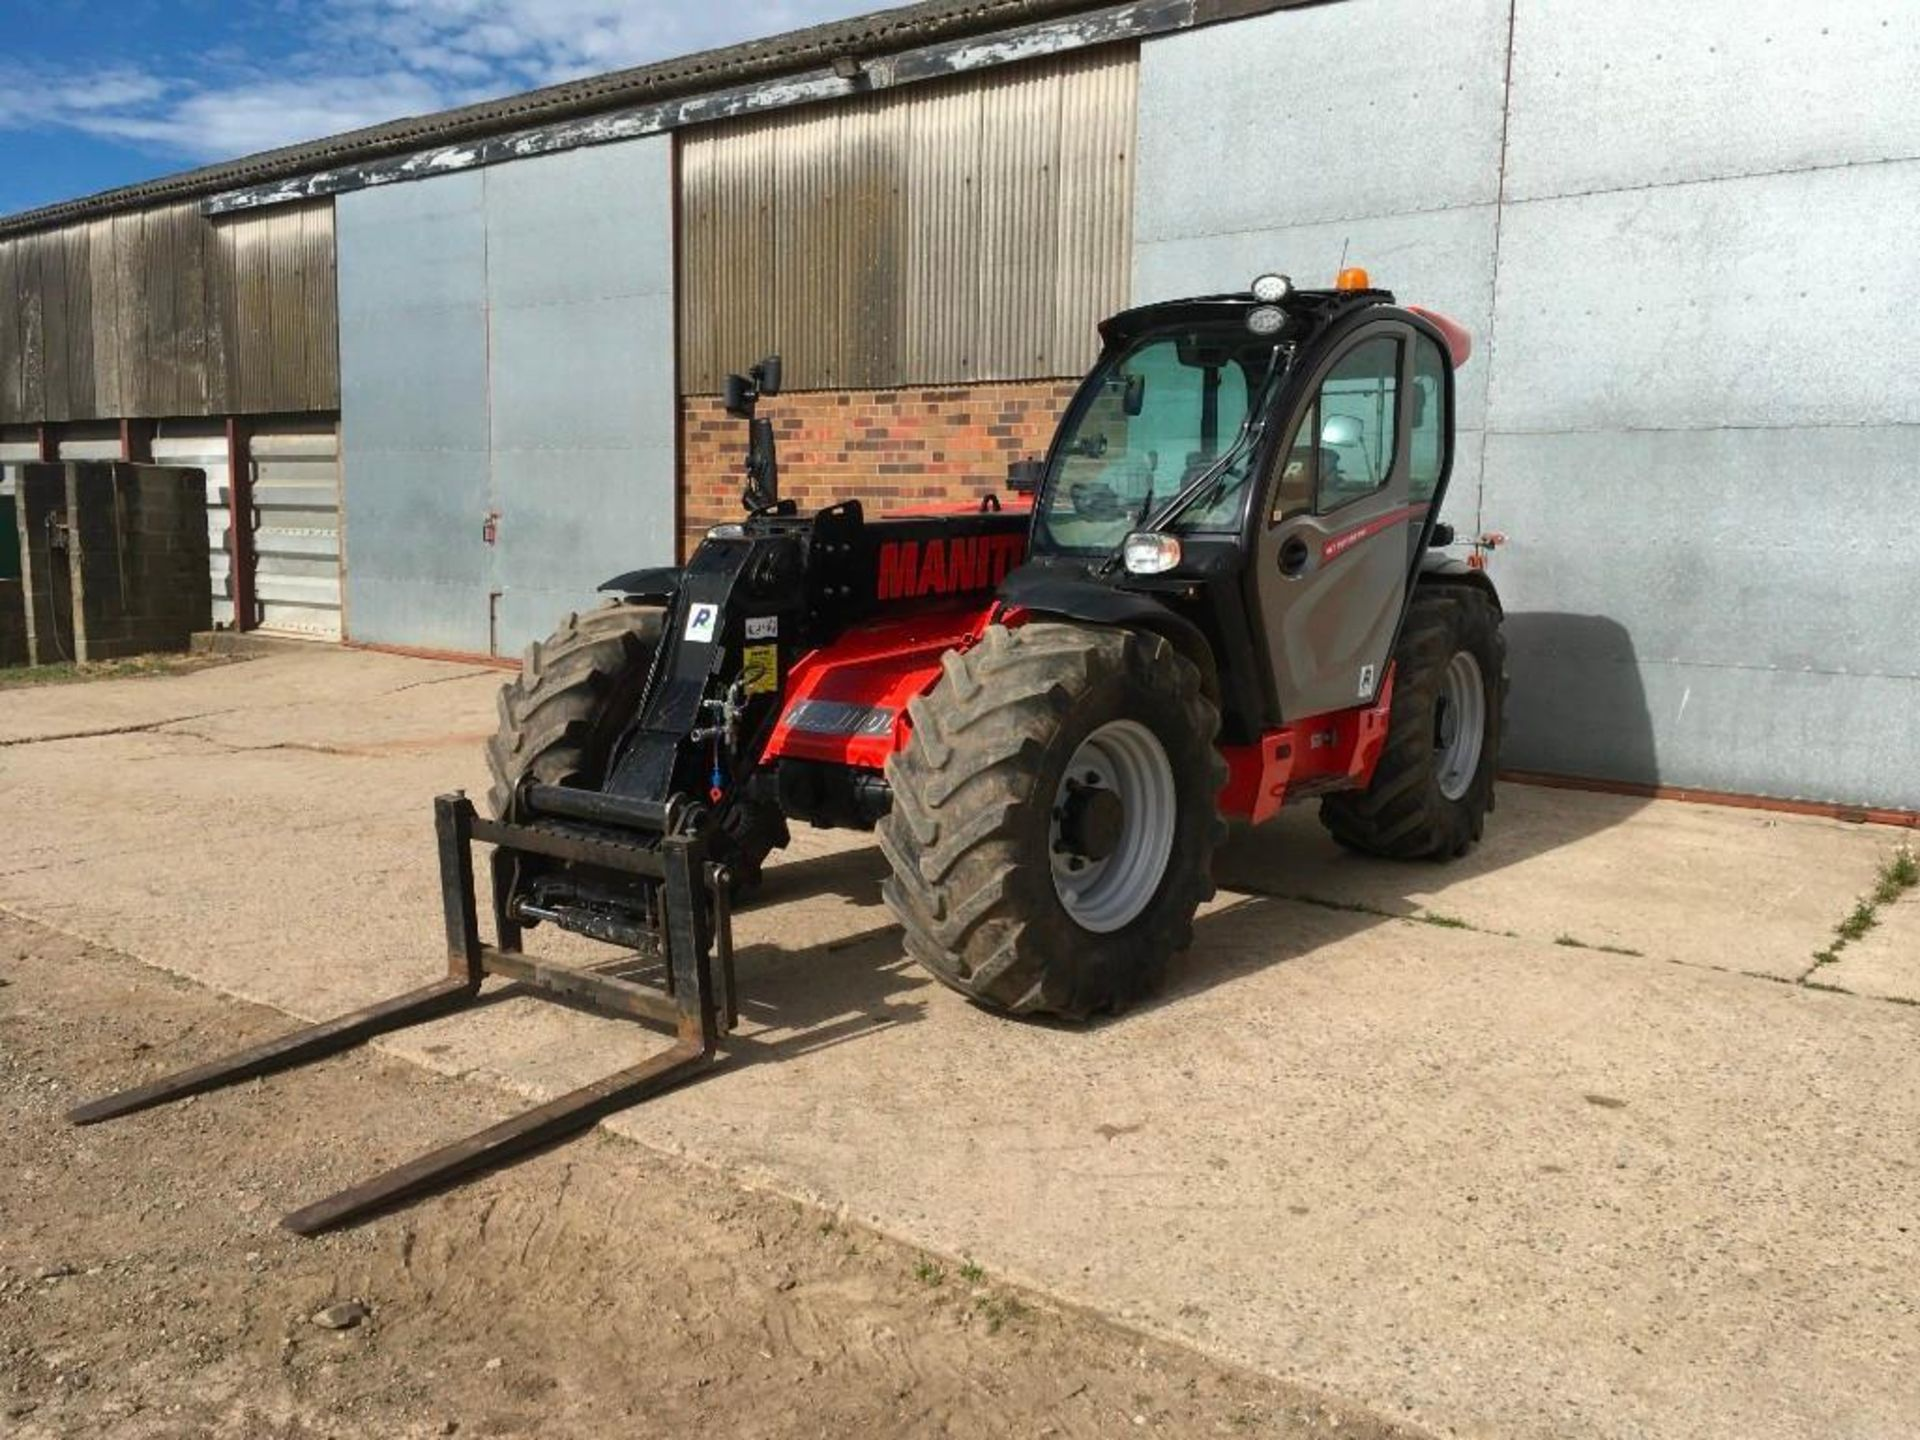 2017 Manitou MLT 737-130 PS+ Elite telehandler with rear pick up hitch, power shift, air seat, elect - Image 2 of 22